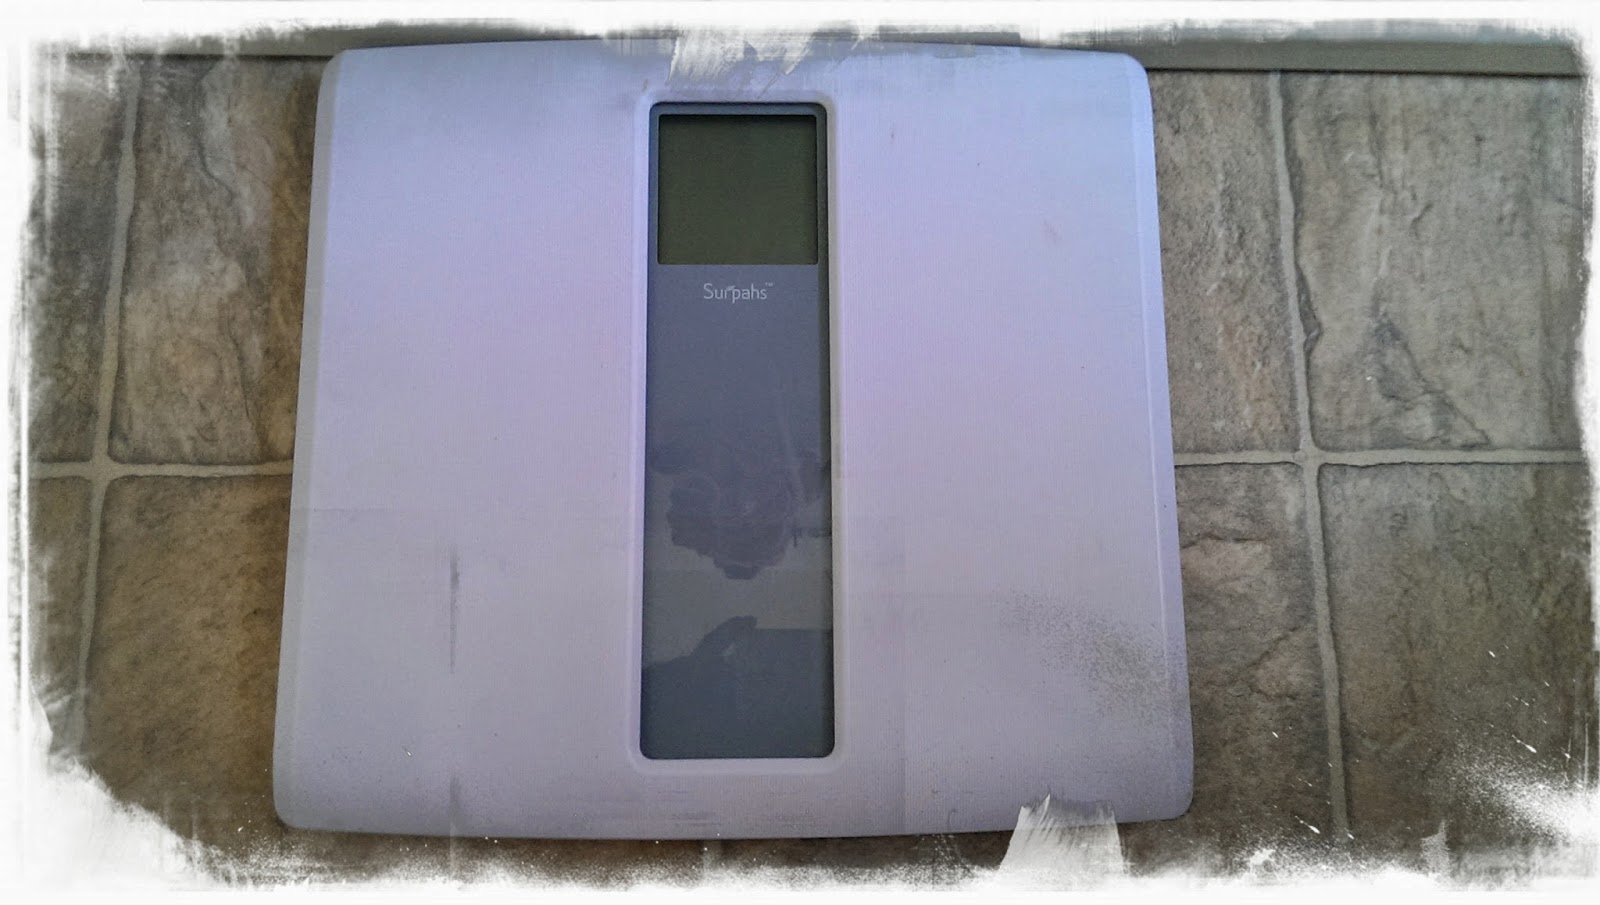 Digital+Scale Surprahs Digital Scale Review -Digital Floor Scales